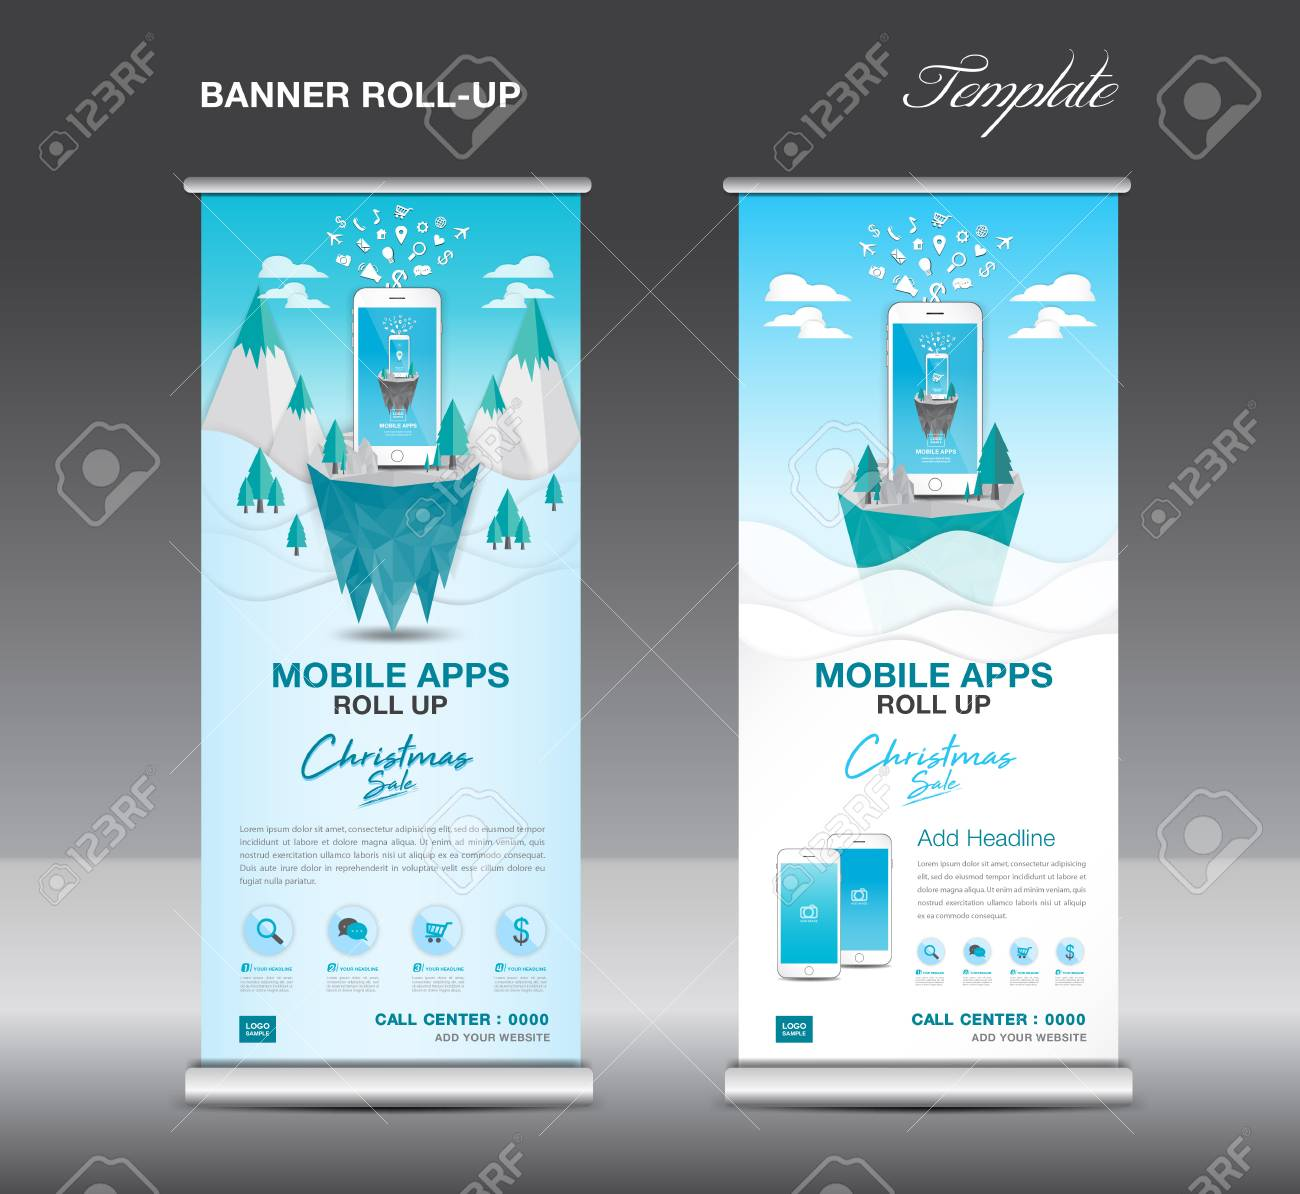 Mobile Apps Roll Up Banner Template On Winter Landscape Design Royalty Free Cliparts Vectors And Stock Illustration Image 91493816